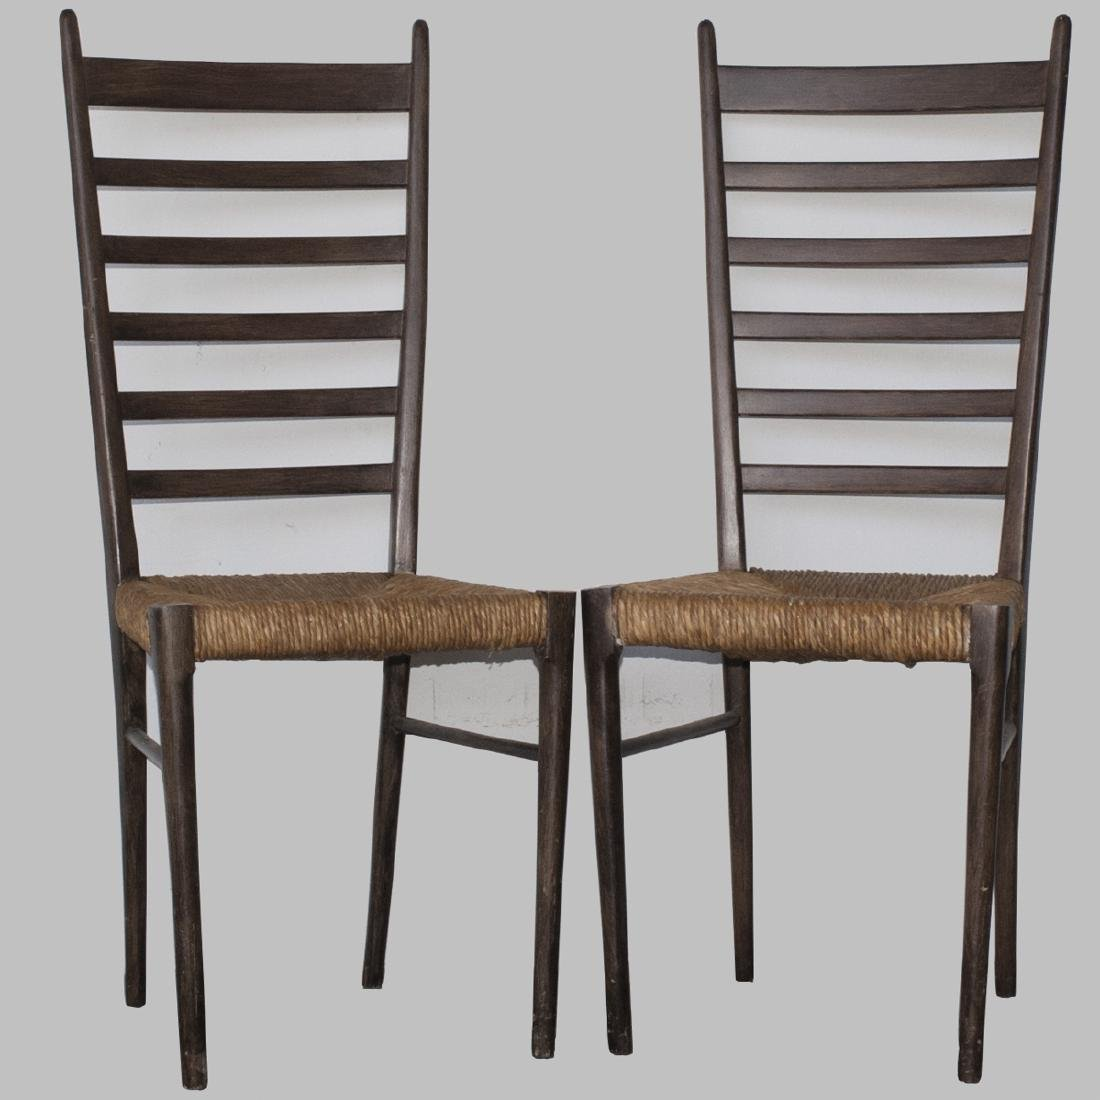 Probably Gio Ponti Woven Wicker Wooden Chairs